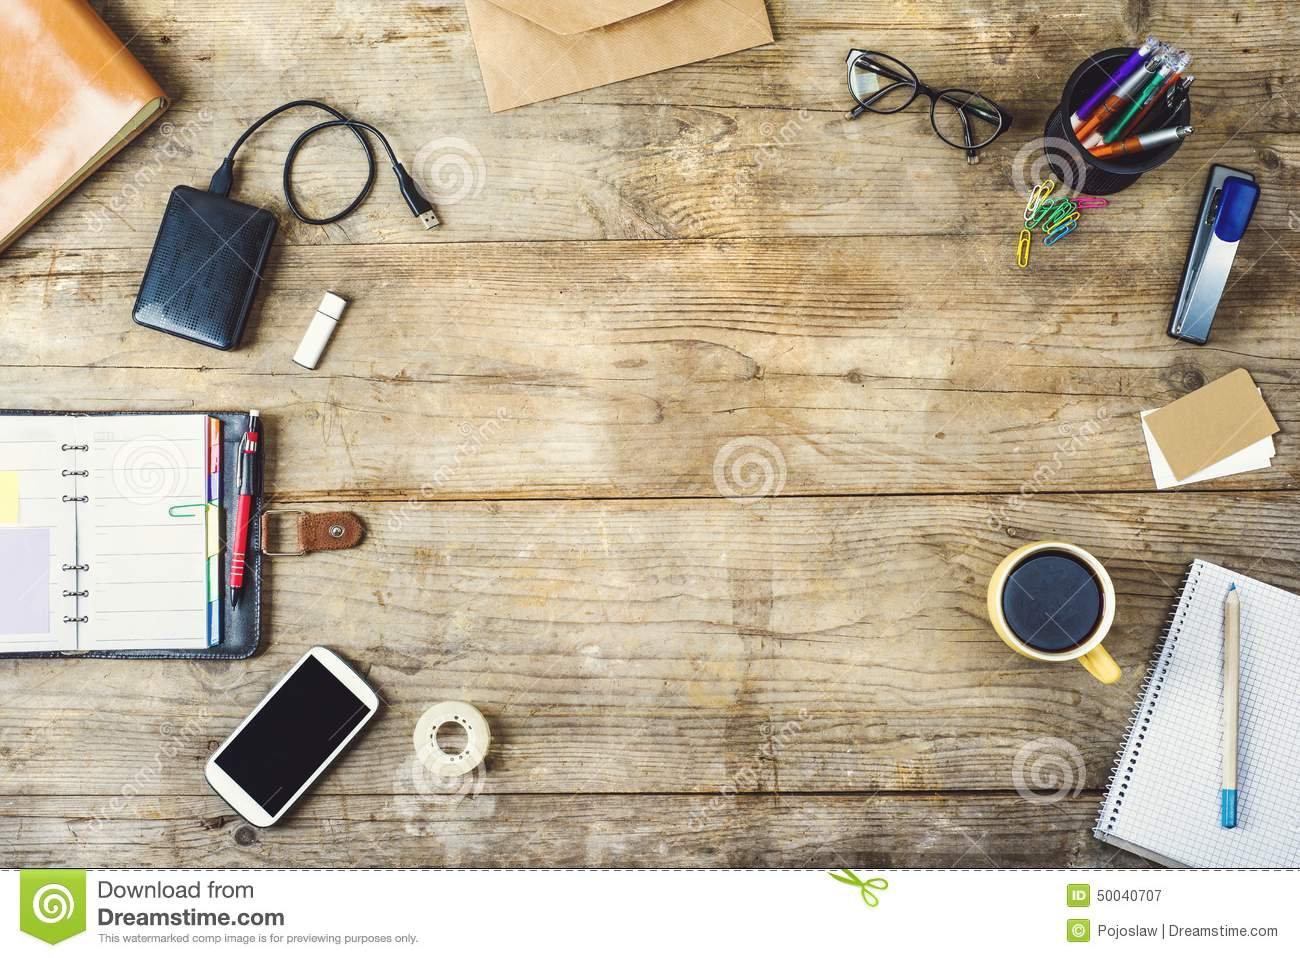 Desktop Mix On A Wooden Office Table. Stock Photo - Image: 50040707